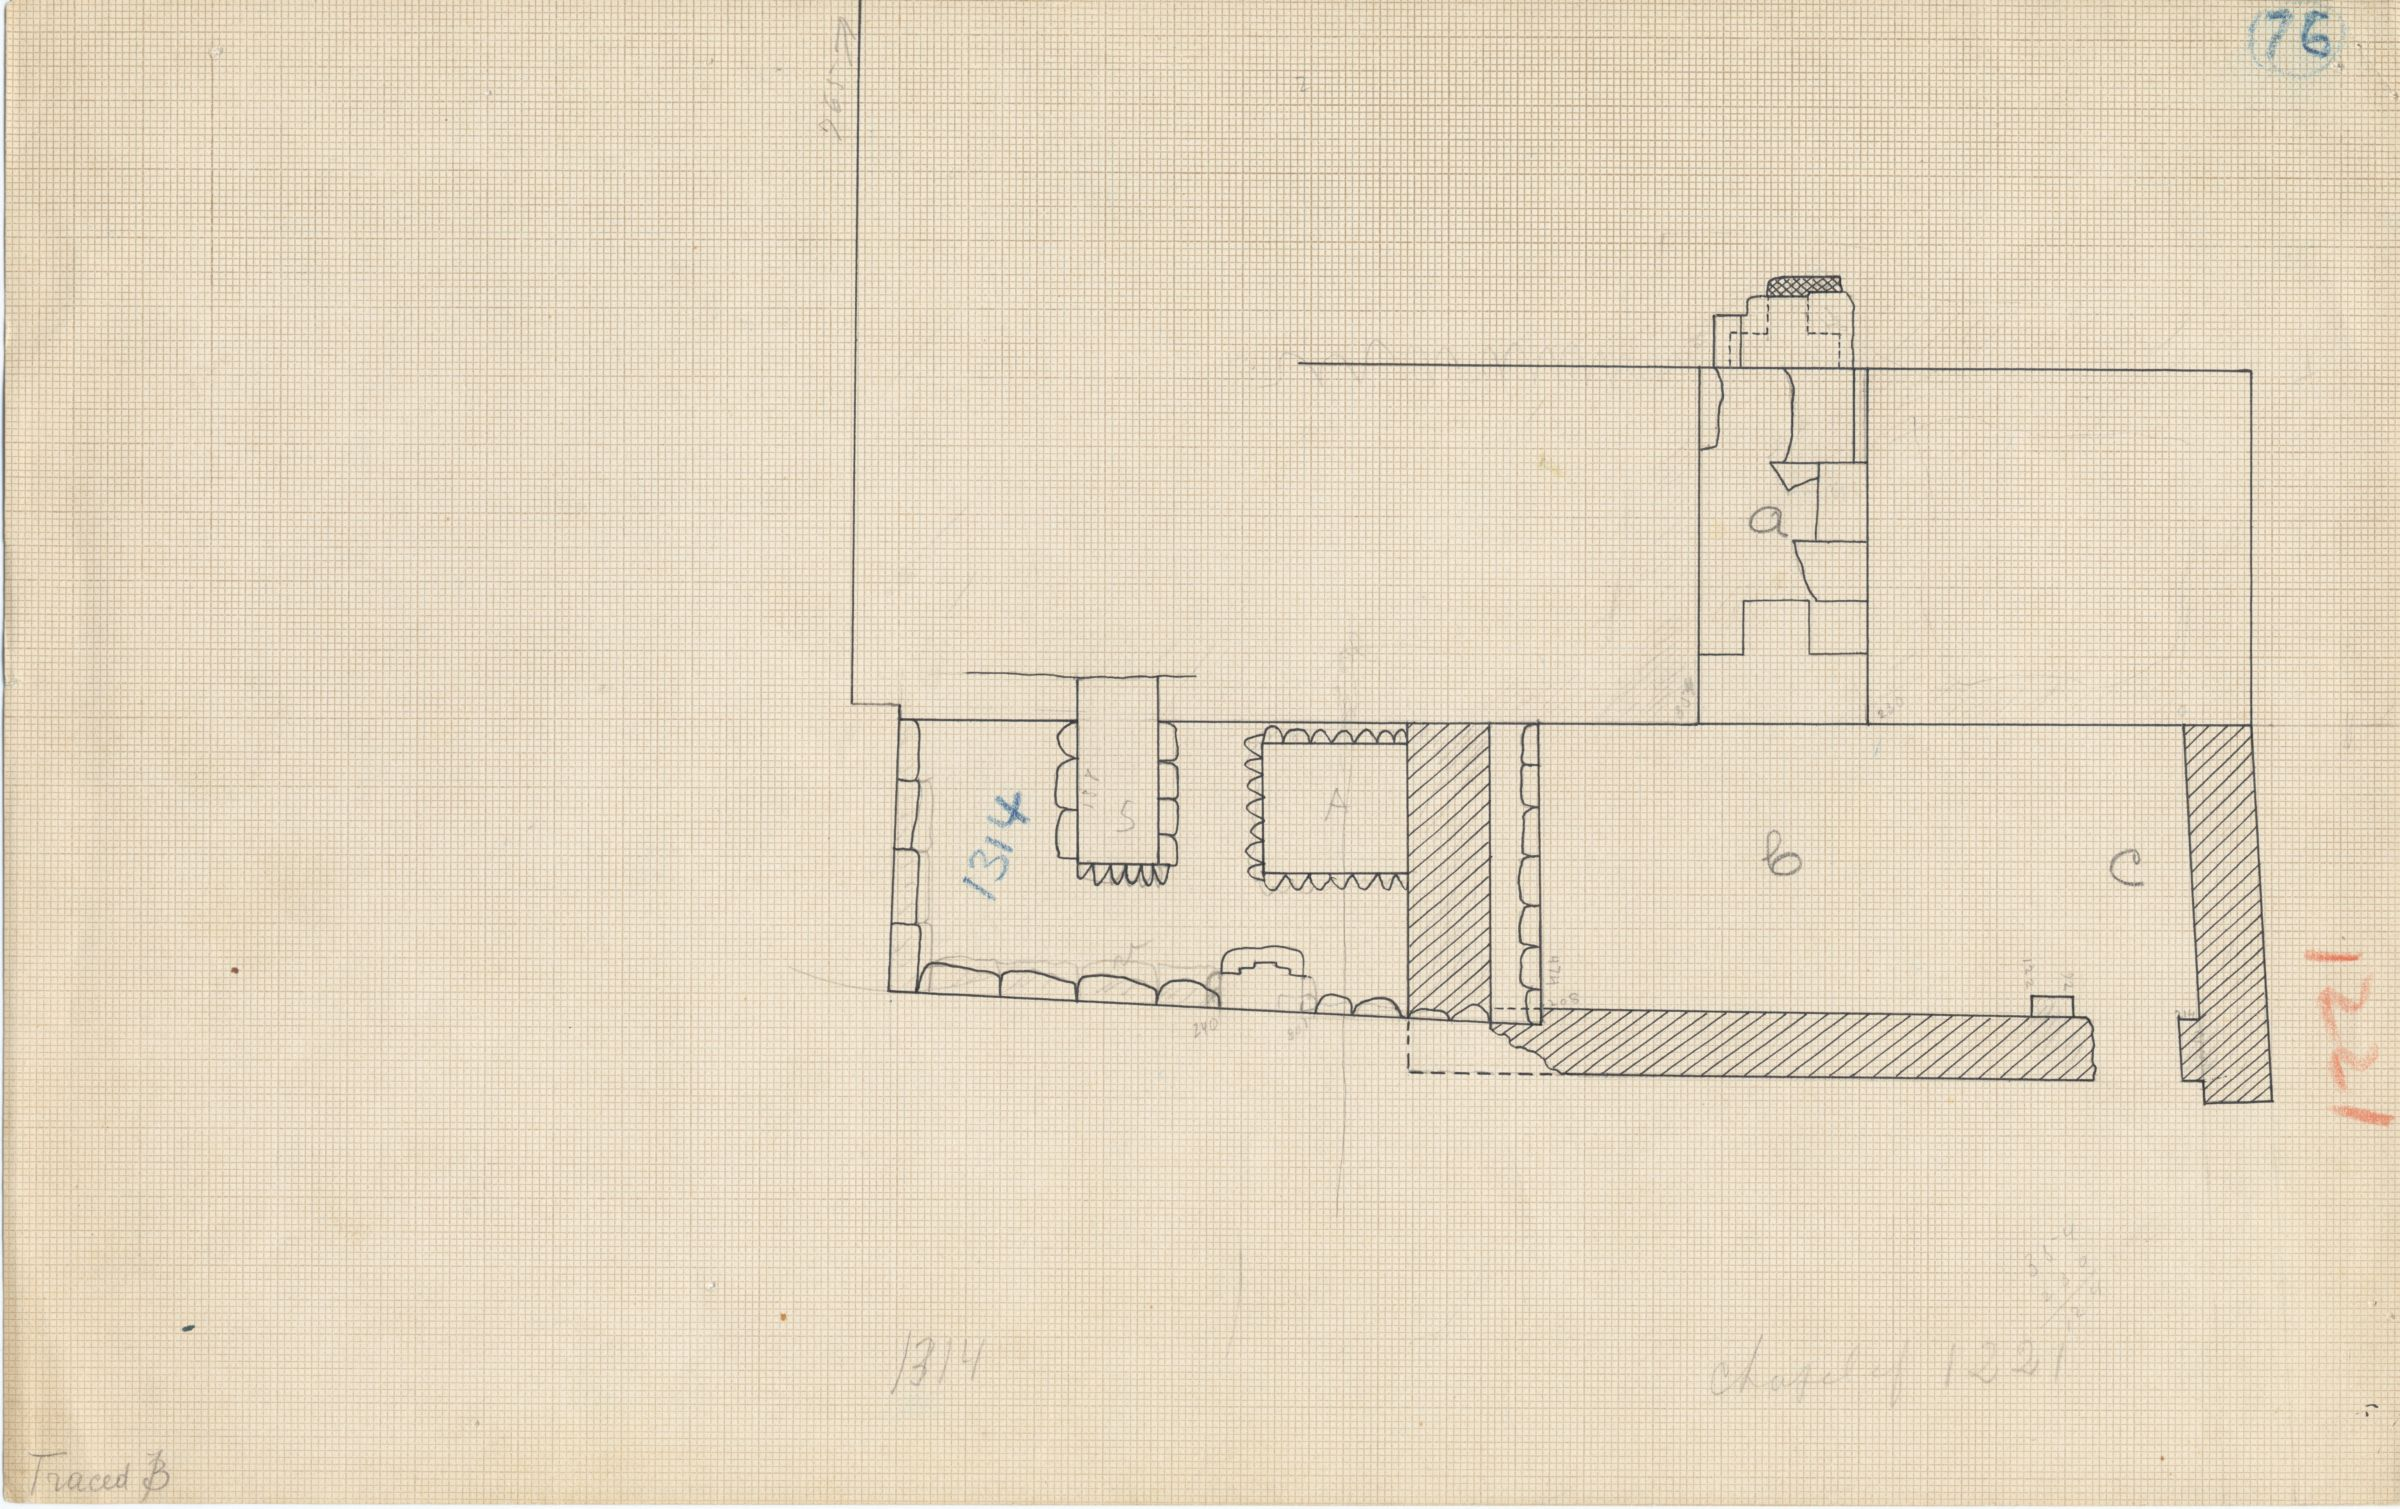 Maps and plans: Plan of G 1314 and G 1221 chapel